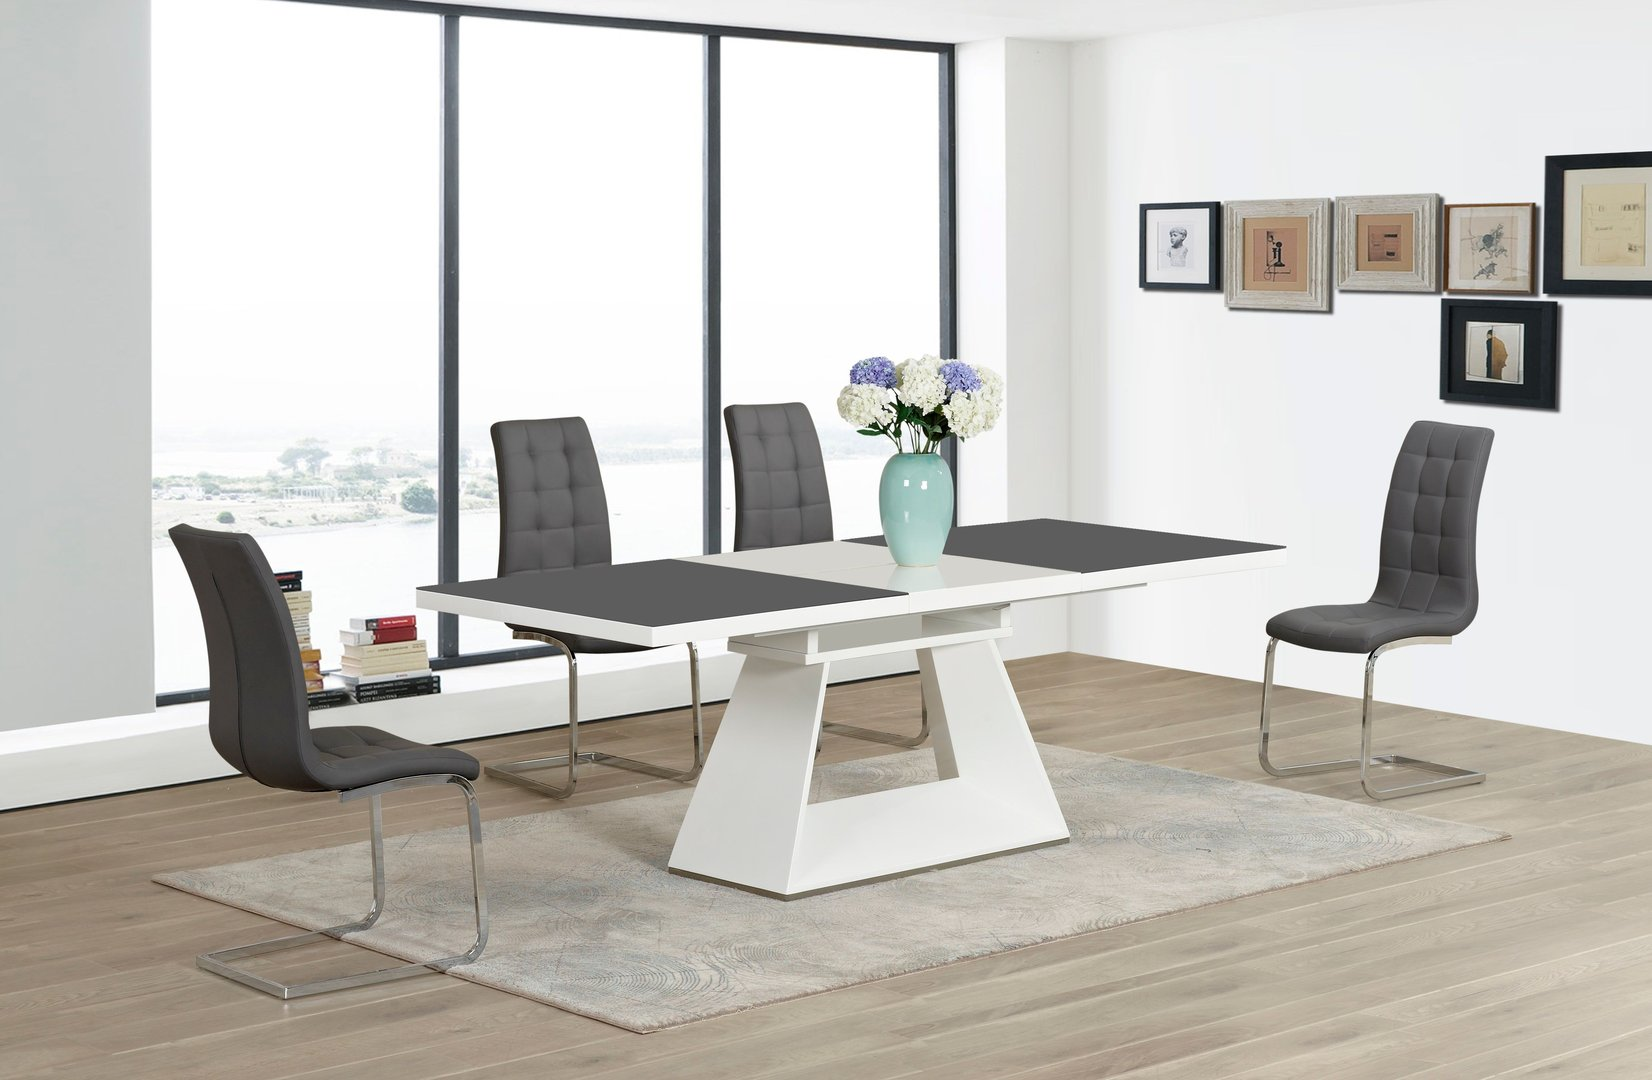 Grey white extending high gloss glass dining table and 6 chairs - White extending dining table and chairs ...